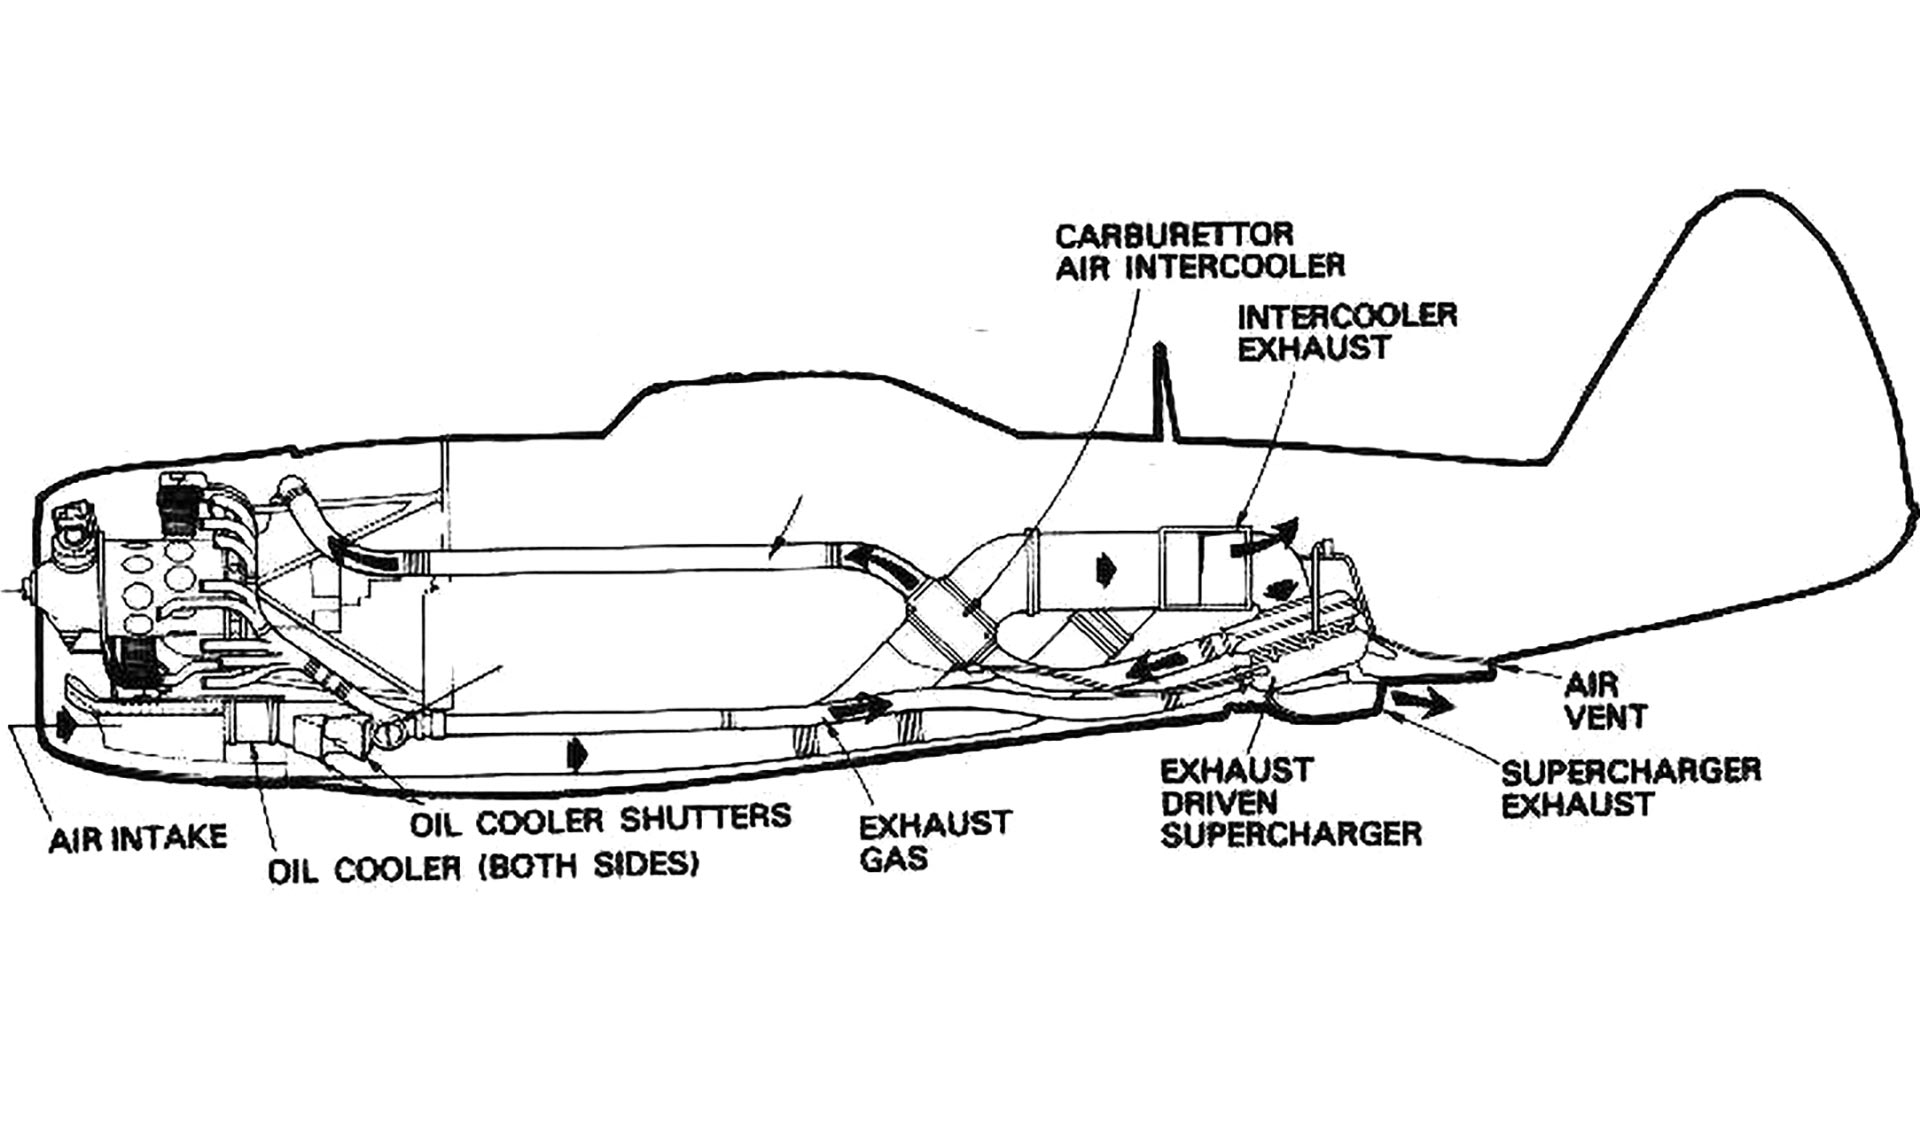 Republic P-47 schematic with a supercharger